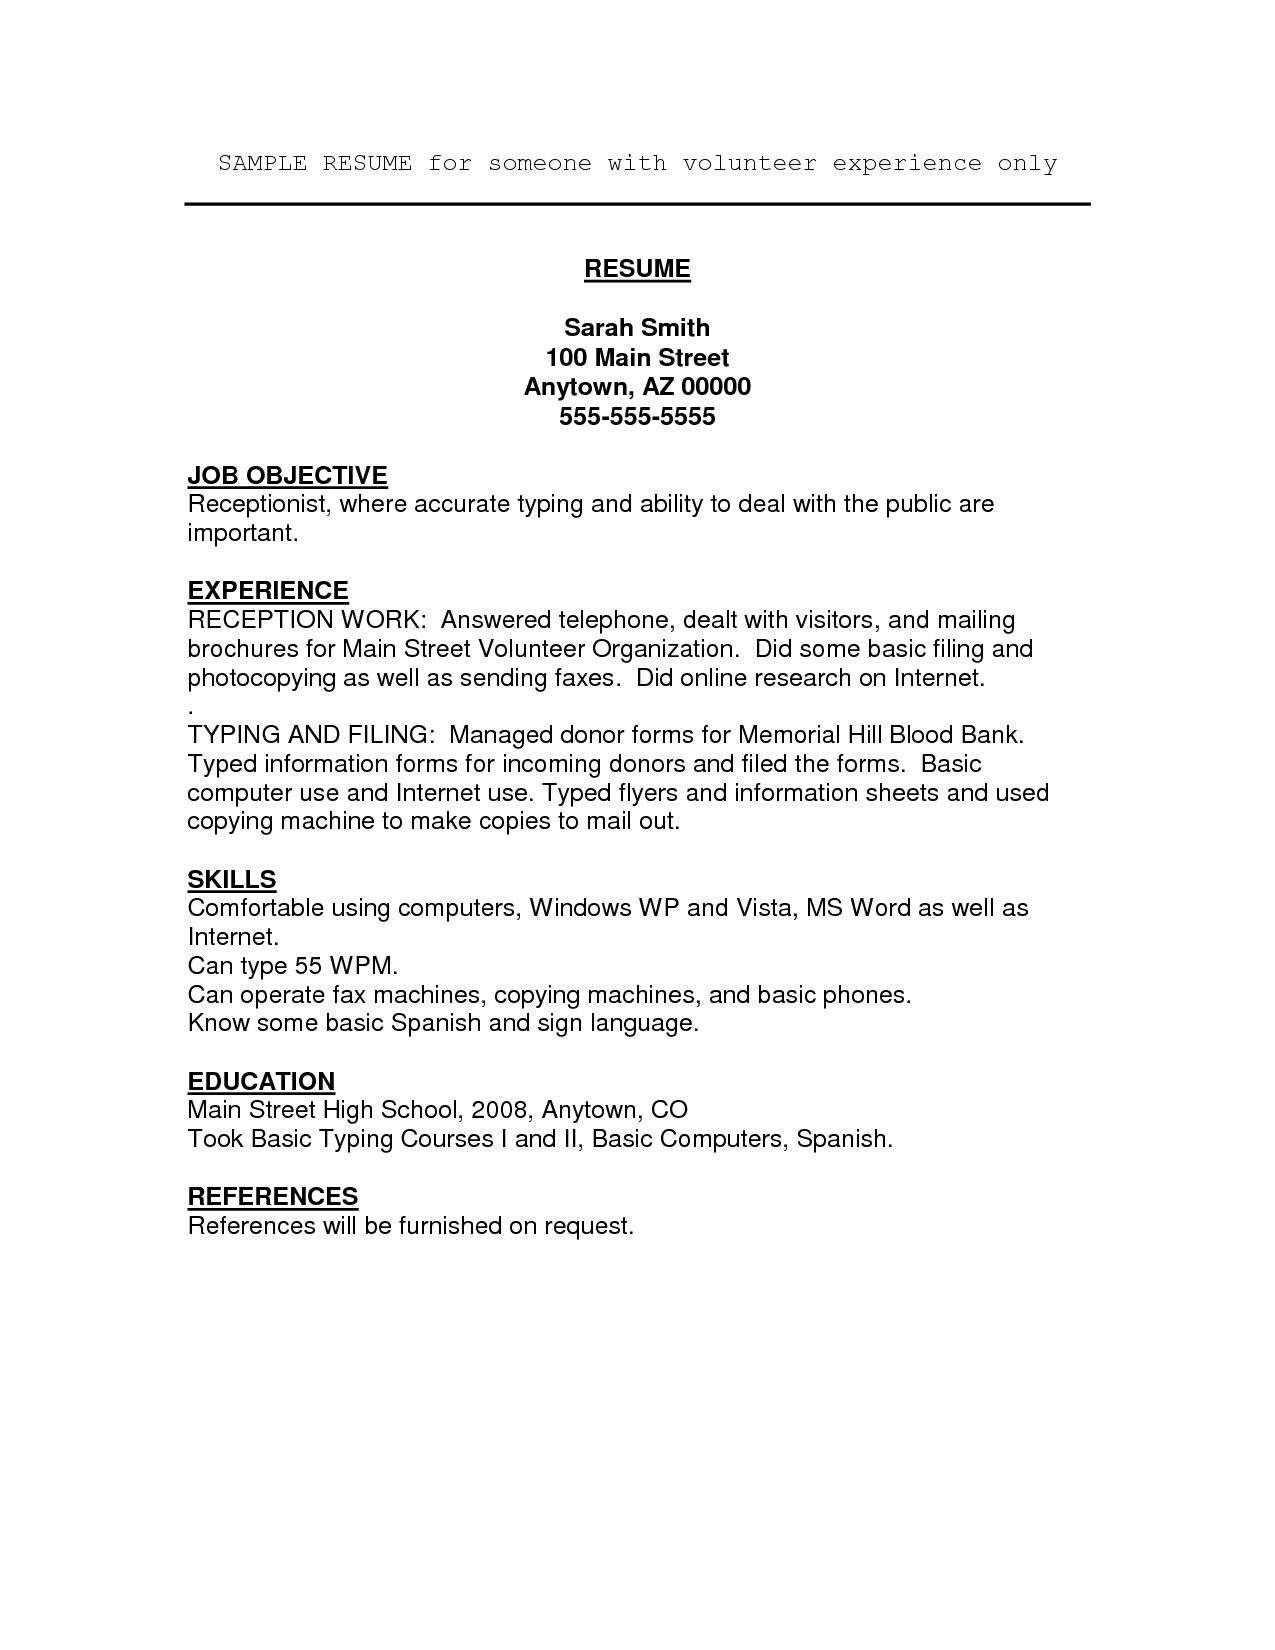 Resume Samples Berathen Volunteer Work Example  How To Write A Resume Resume